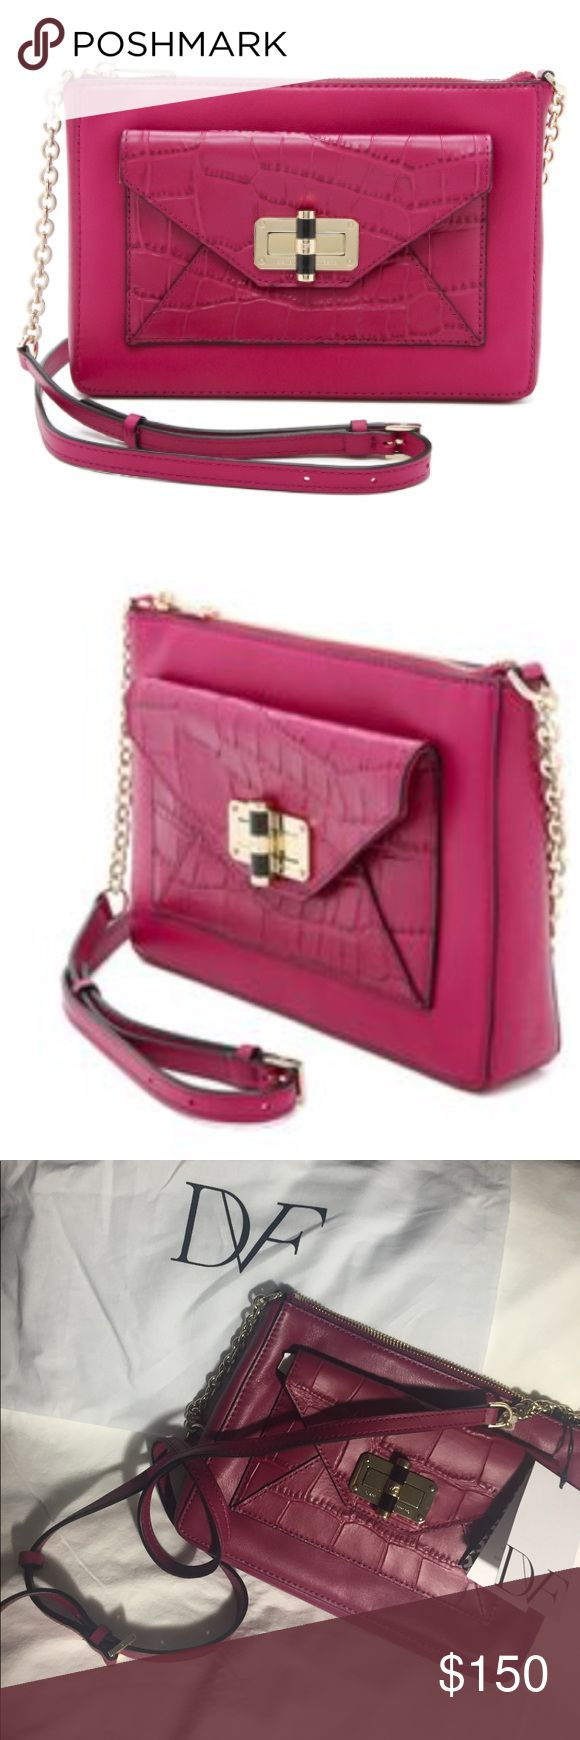 Diane von Furstenberg Cerise bag. Brand new DVF bag with tags and dust bag. Diane Von Furstenberg Bags Shoulder Bags